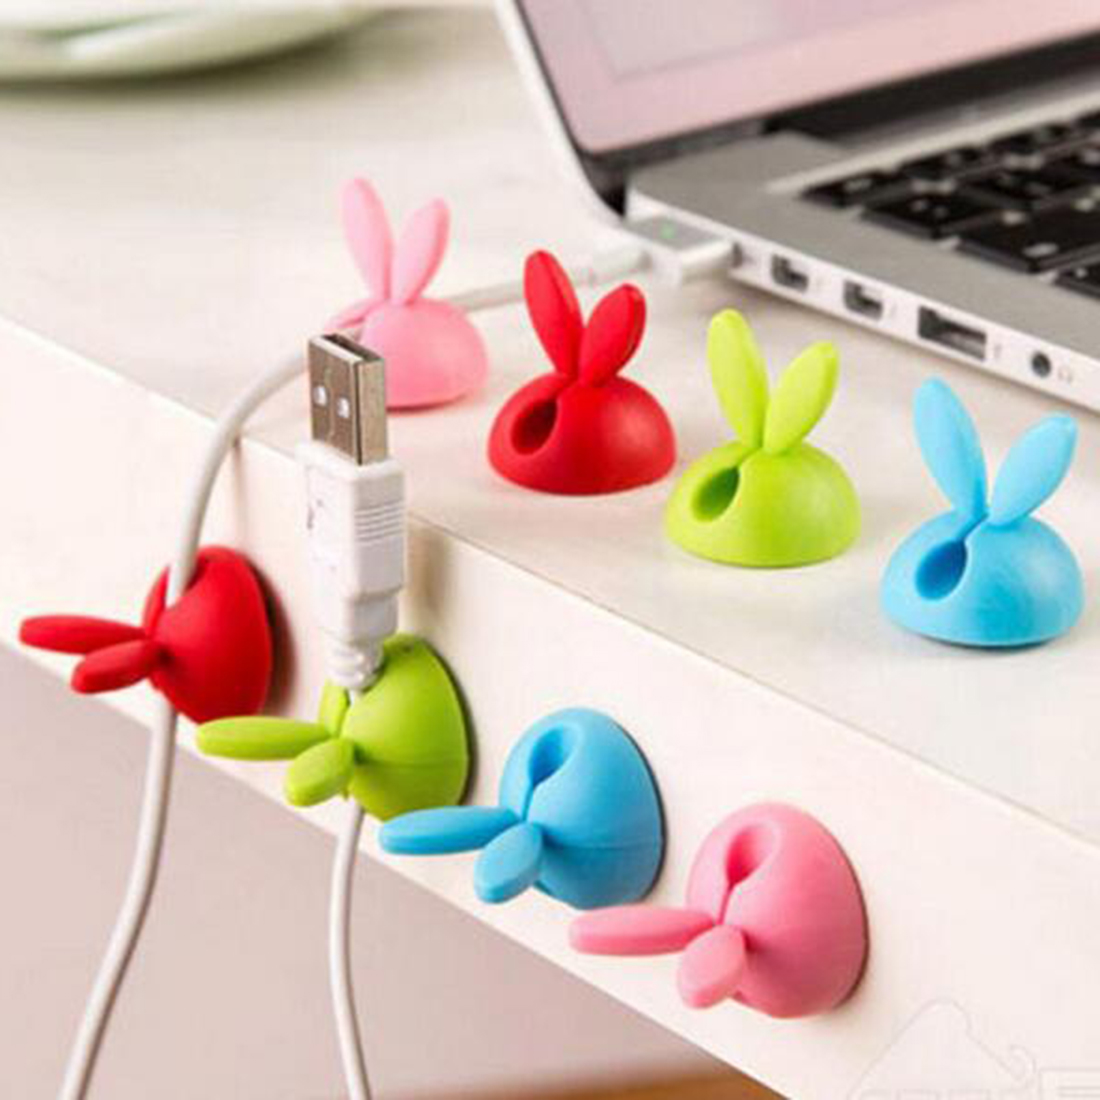 Digital Cables Faithful Marsnaska 4pcs Bunny Ear Rabbit Cable Clips Cord Ties Holder Cable Fastener Desk Tidy Organiser Wire Cord Usb Charger Holder Relieving Rheumatism